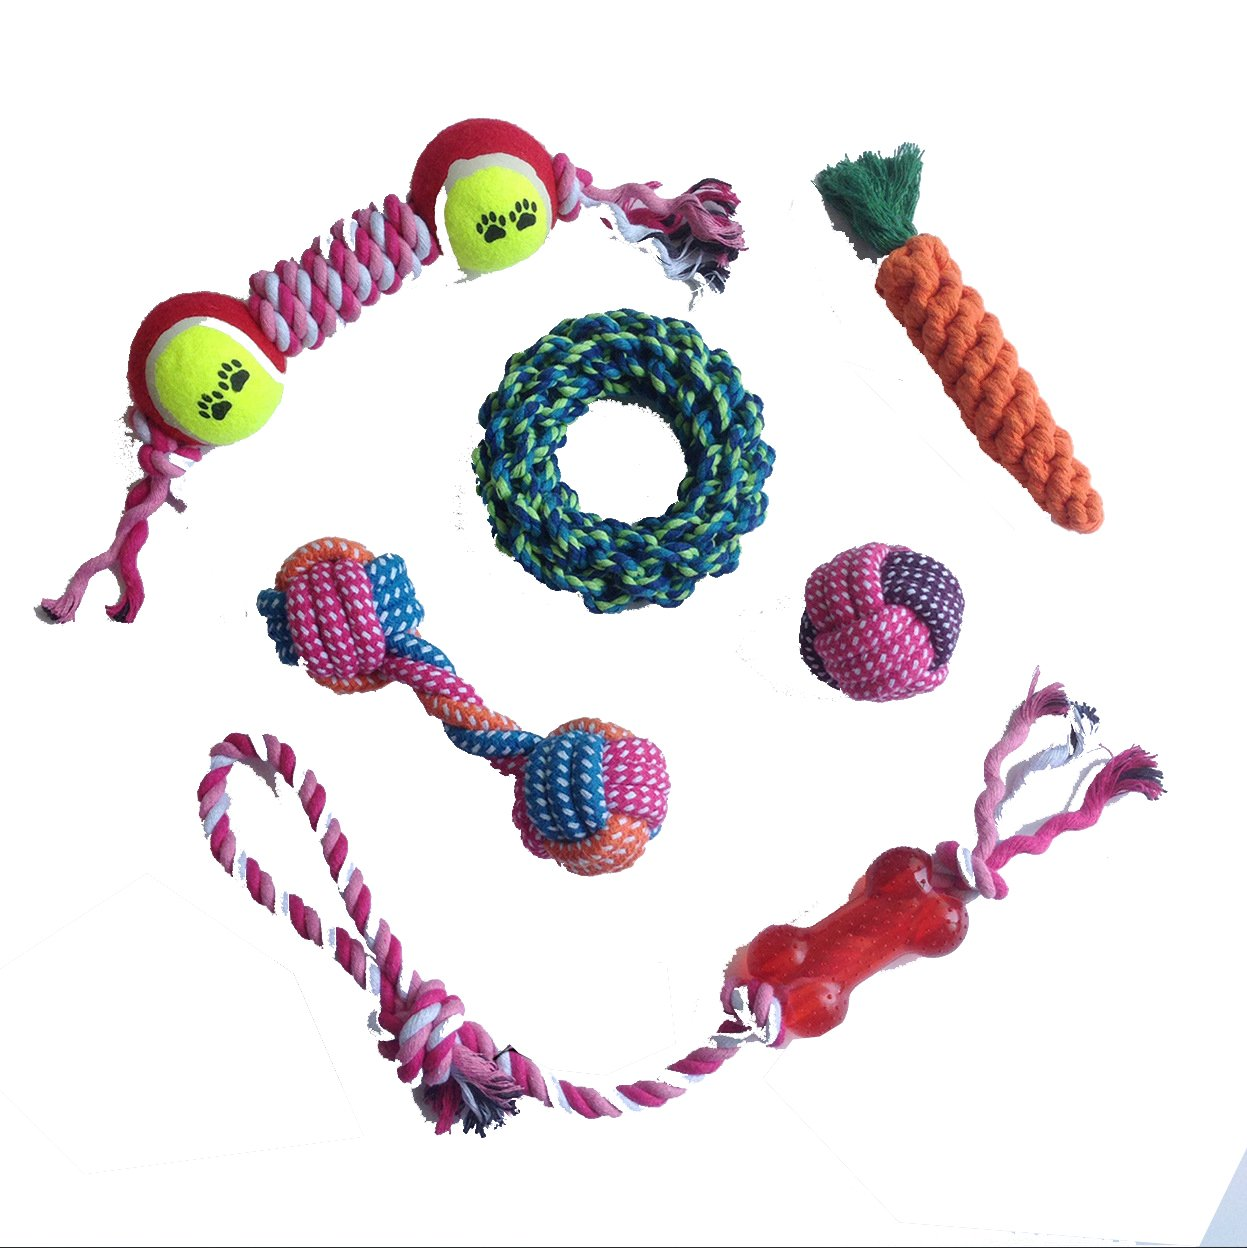 Pety Pet Dog Toys 6 Pack Gift Set, Variety Pet Dogs Toy Set for Medium to Small Doggie (Style D) by Pety Pet